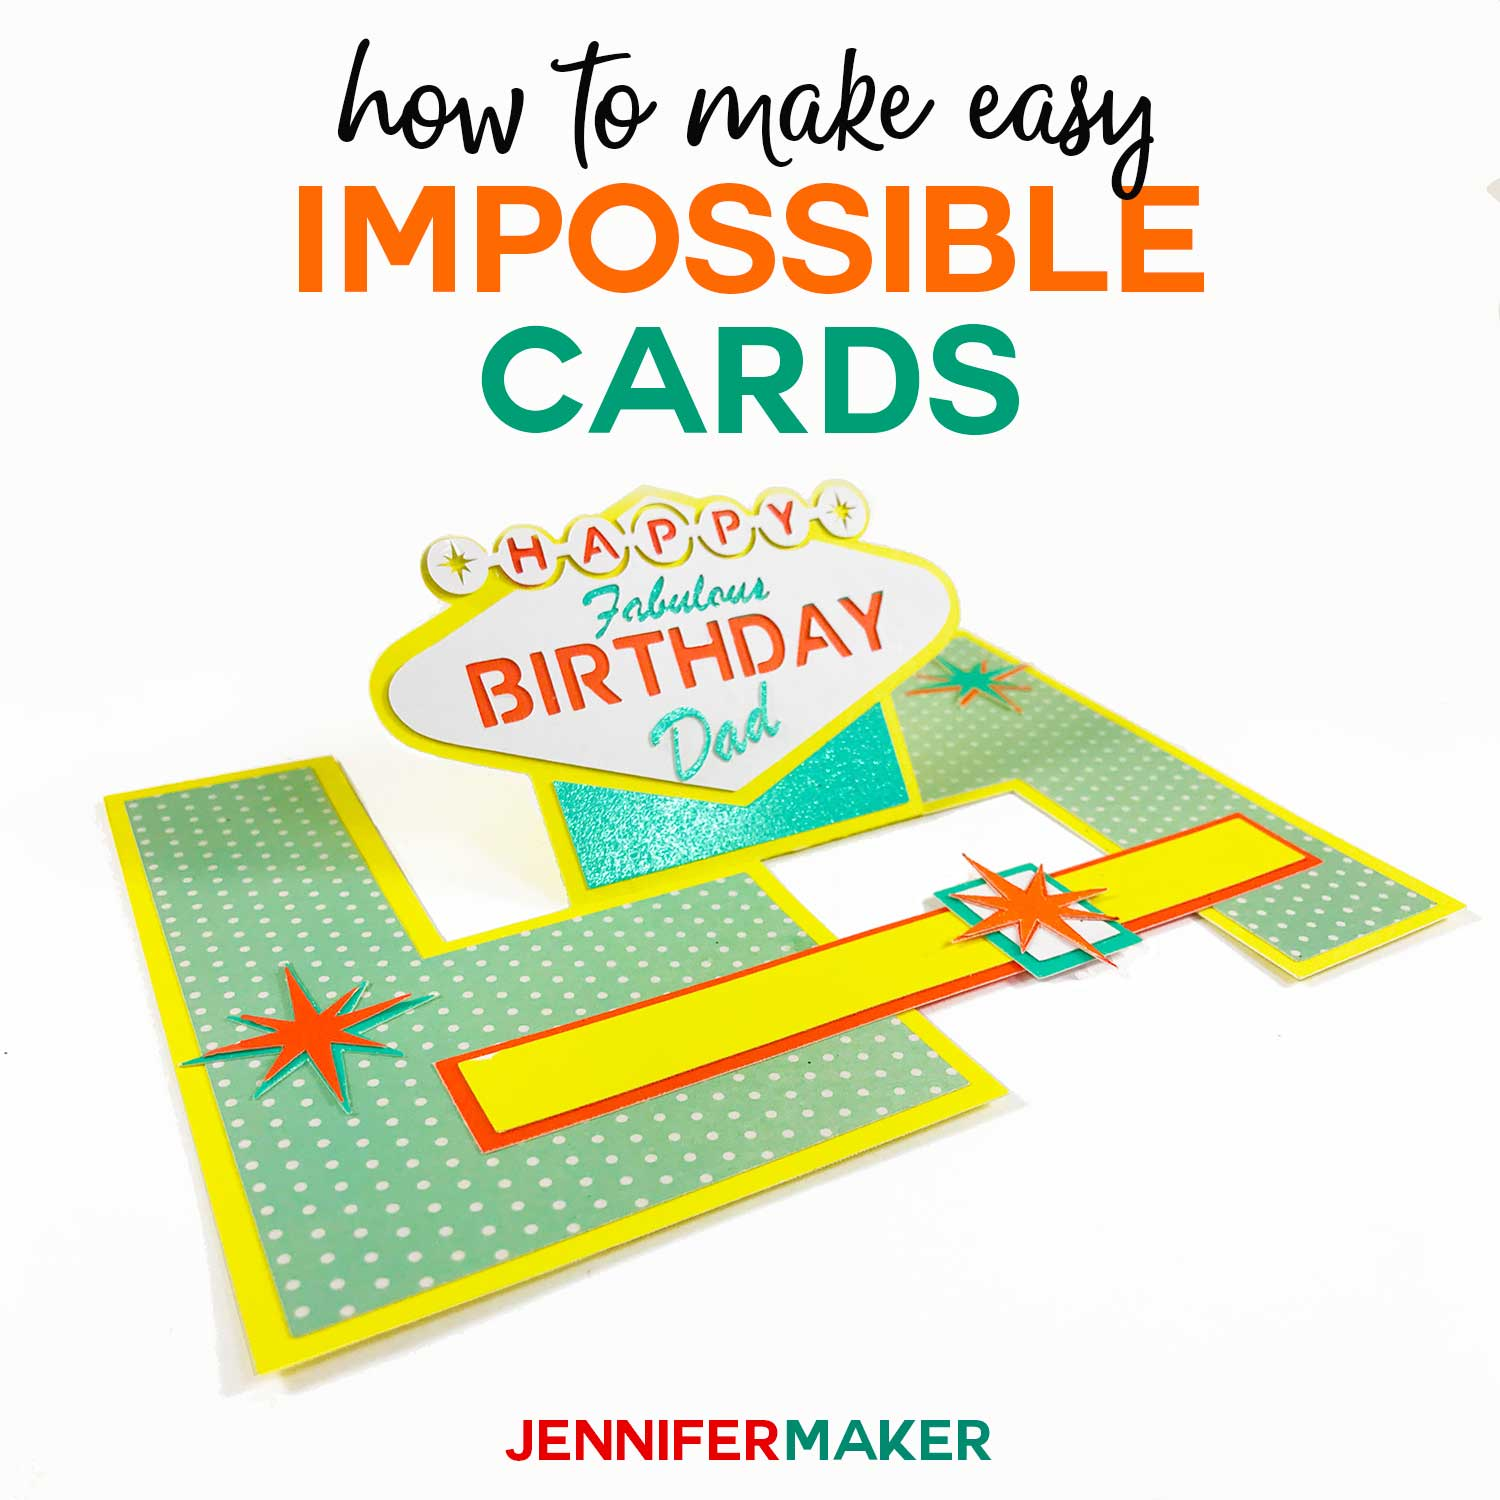 How To Make Easy Impossible Cards With Templates And Svg Cut Files Cardmaking Cricut